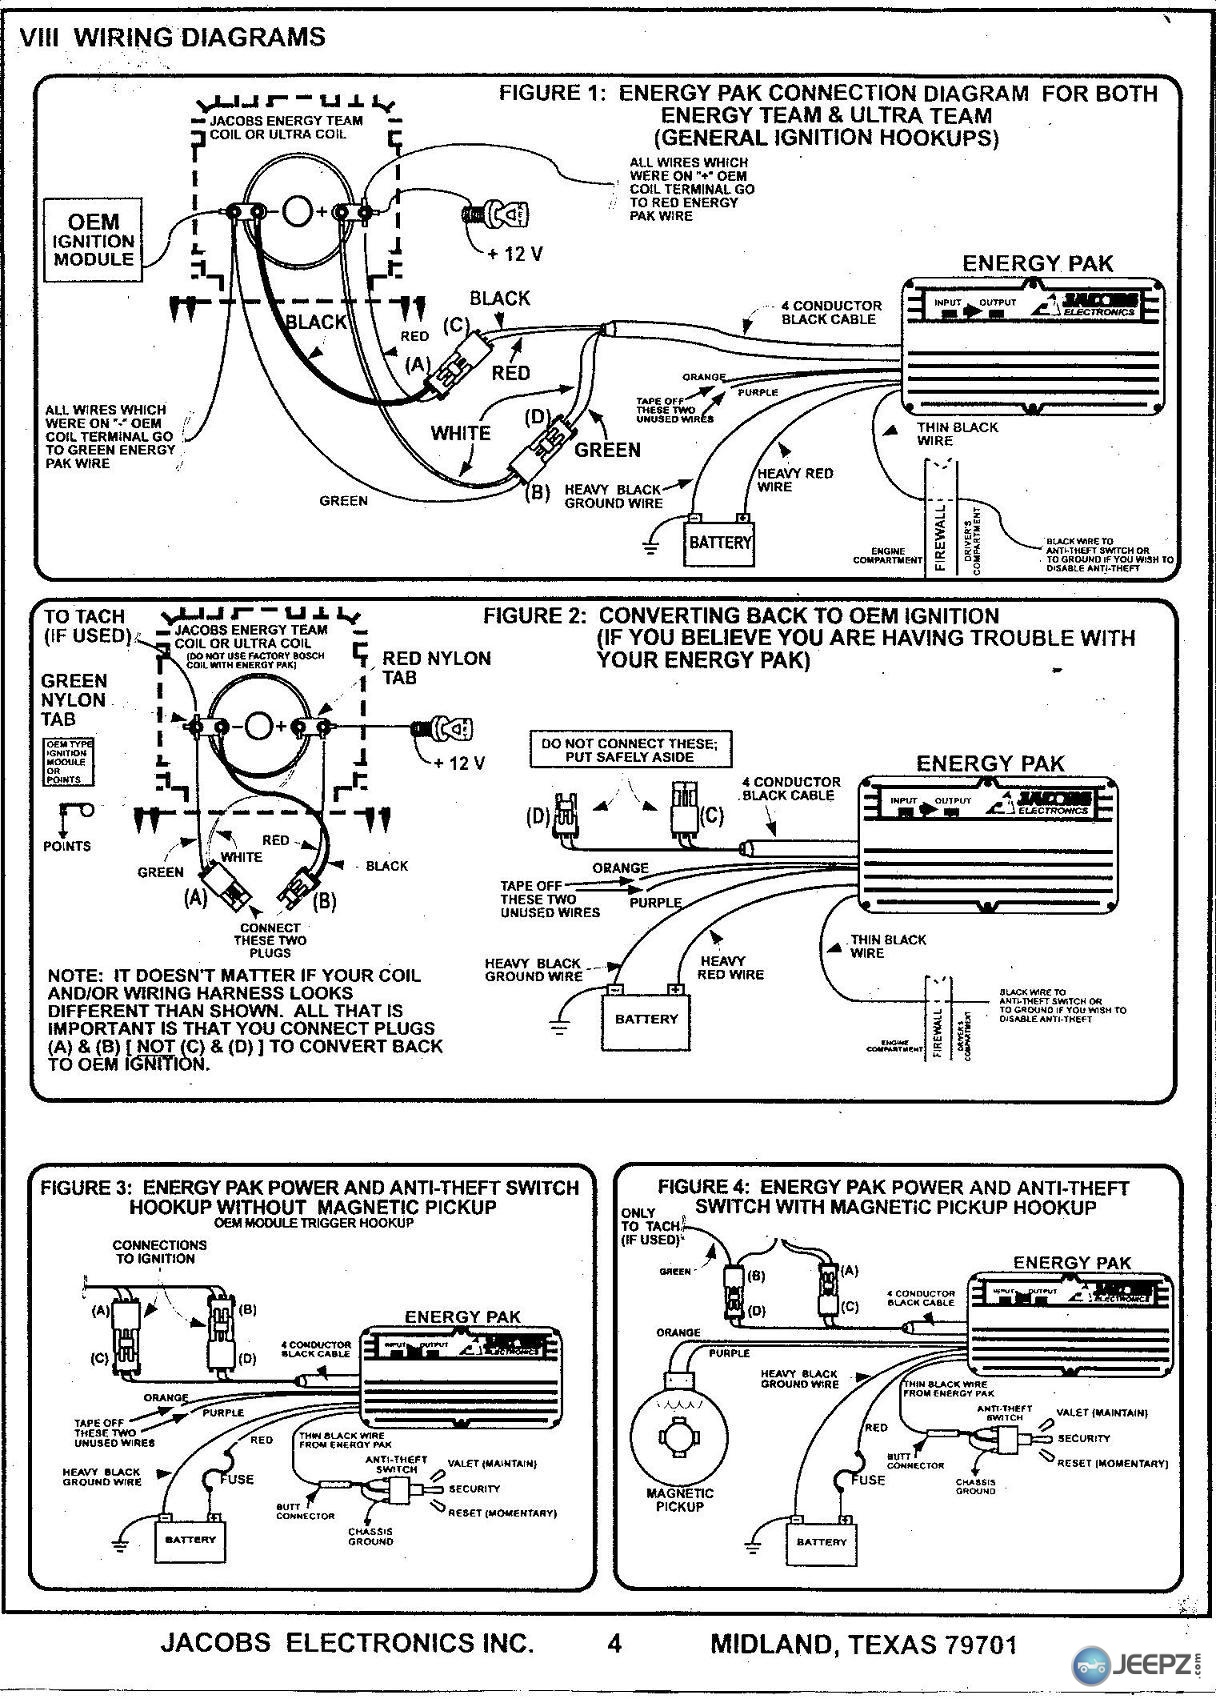 Jacobs Electronics Ignition System Wiring - Wiring Diagram M2 on